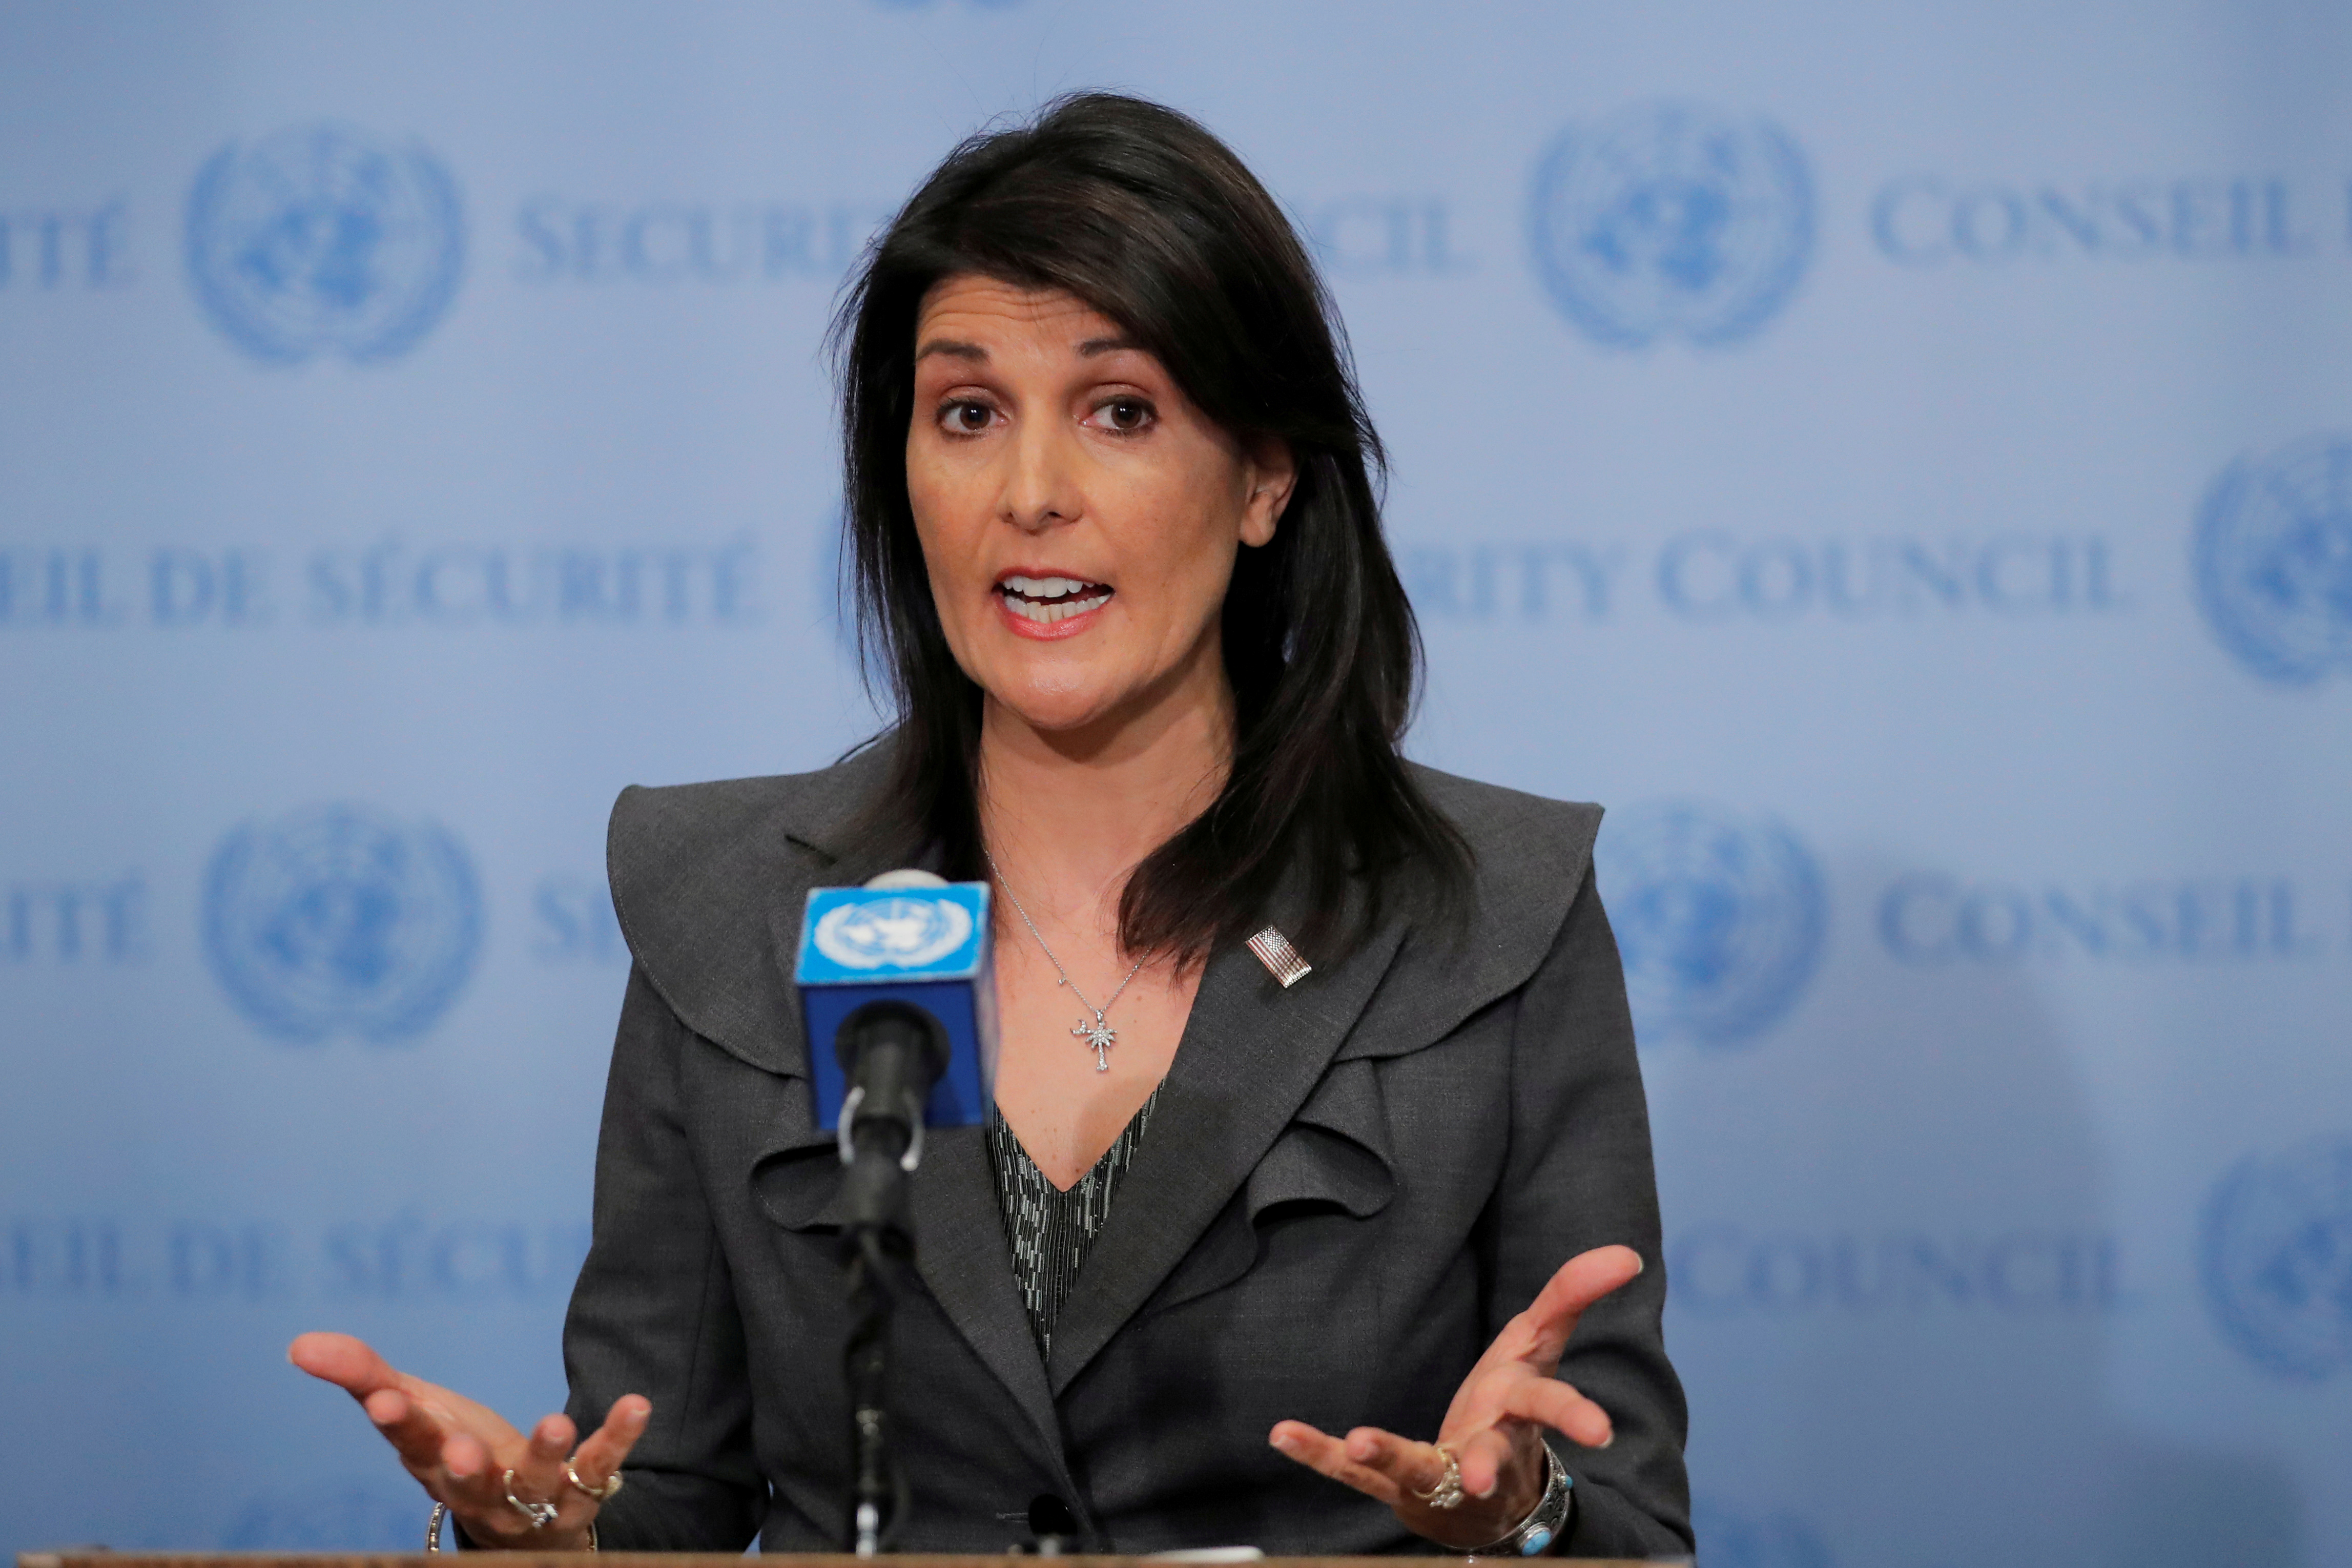 U.S. Ambassador to the United Nations Nikki Haley speaks in New York on Jan. 2, 2018.